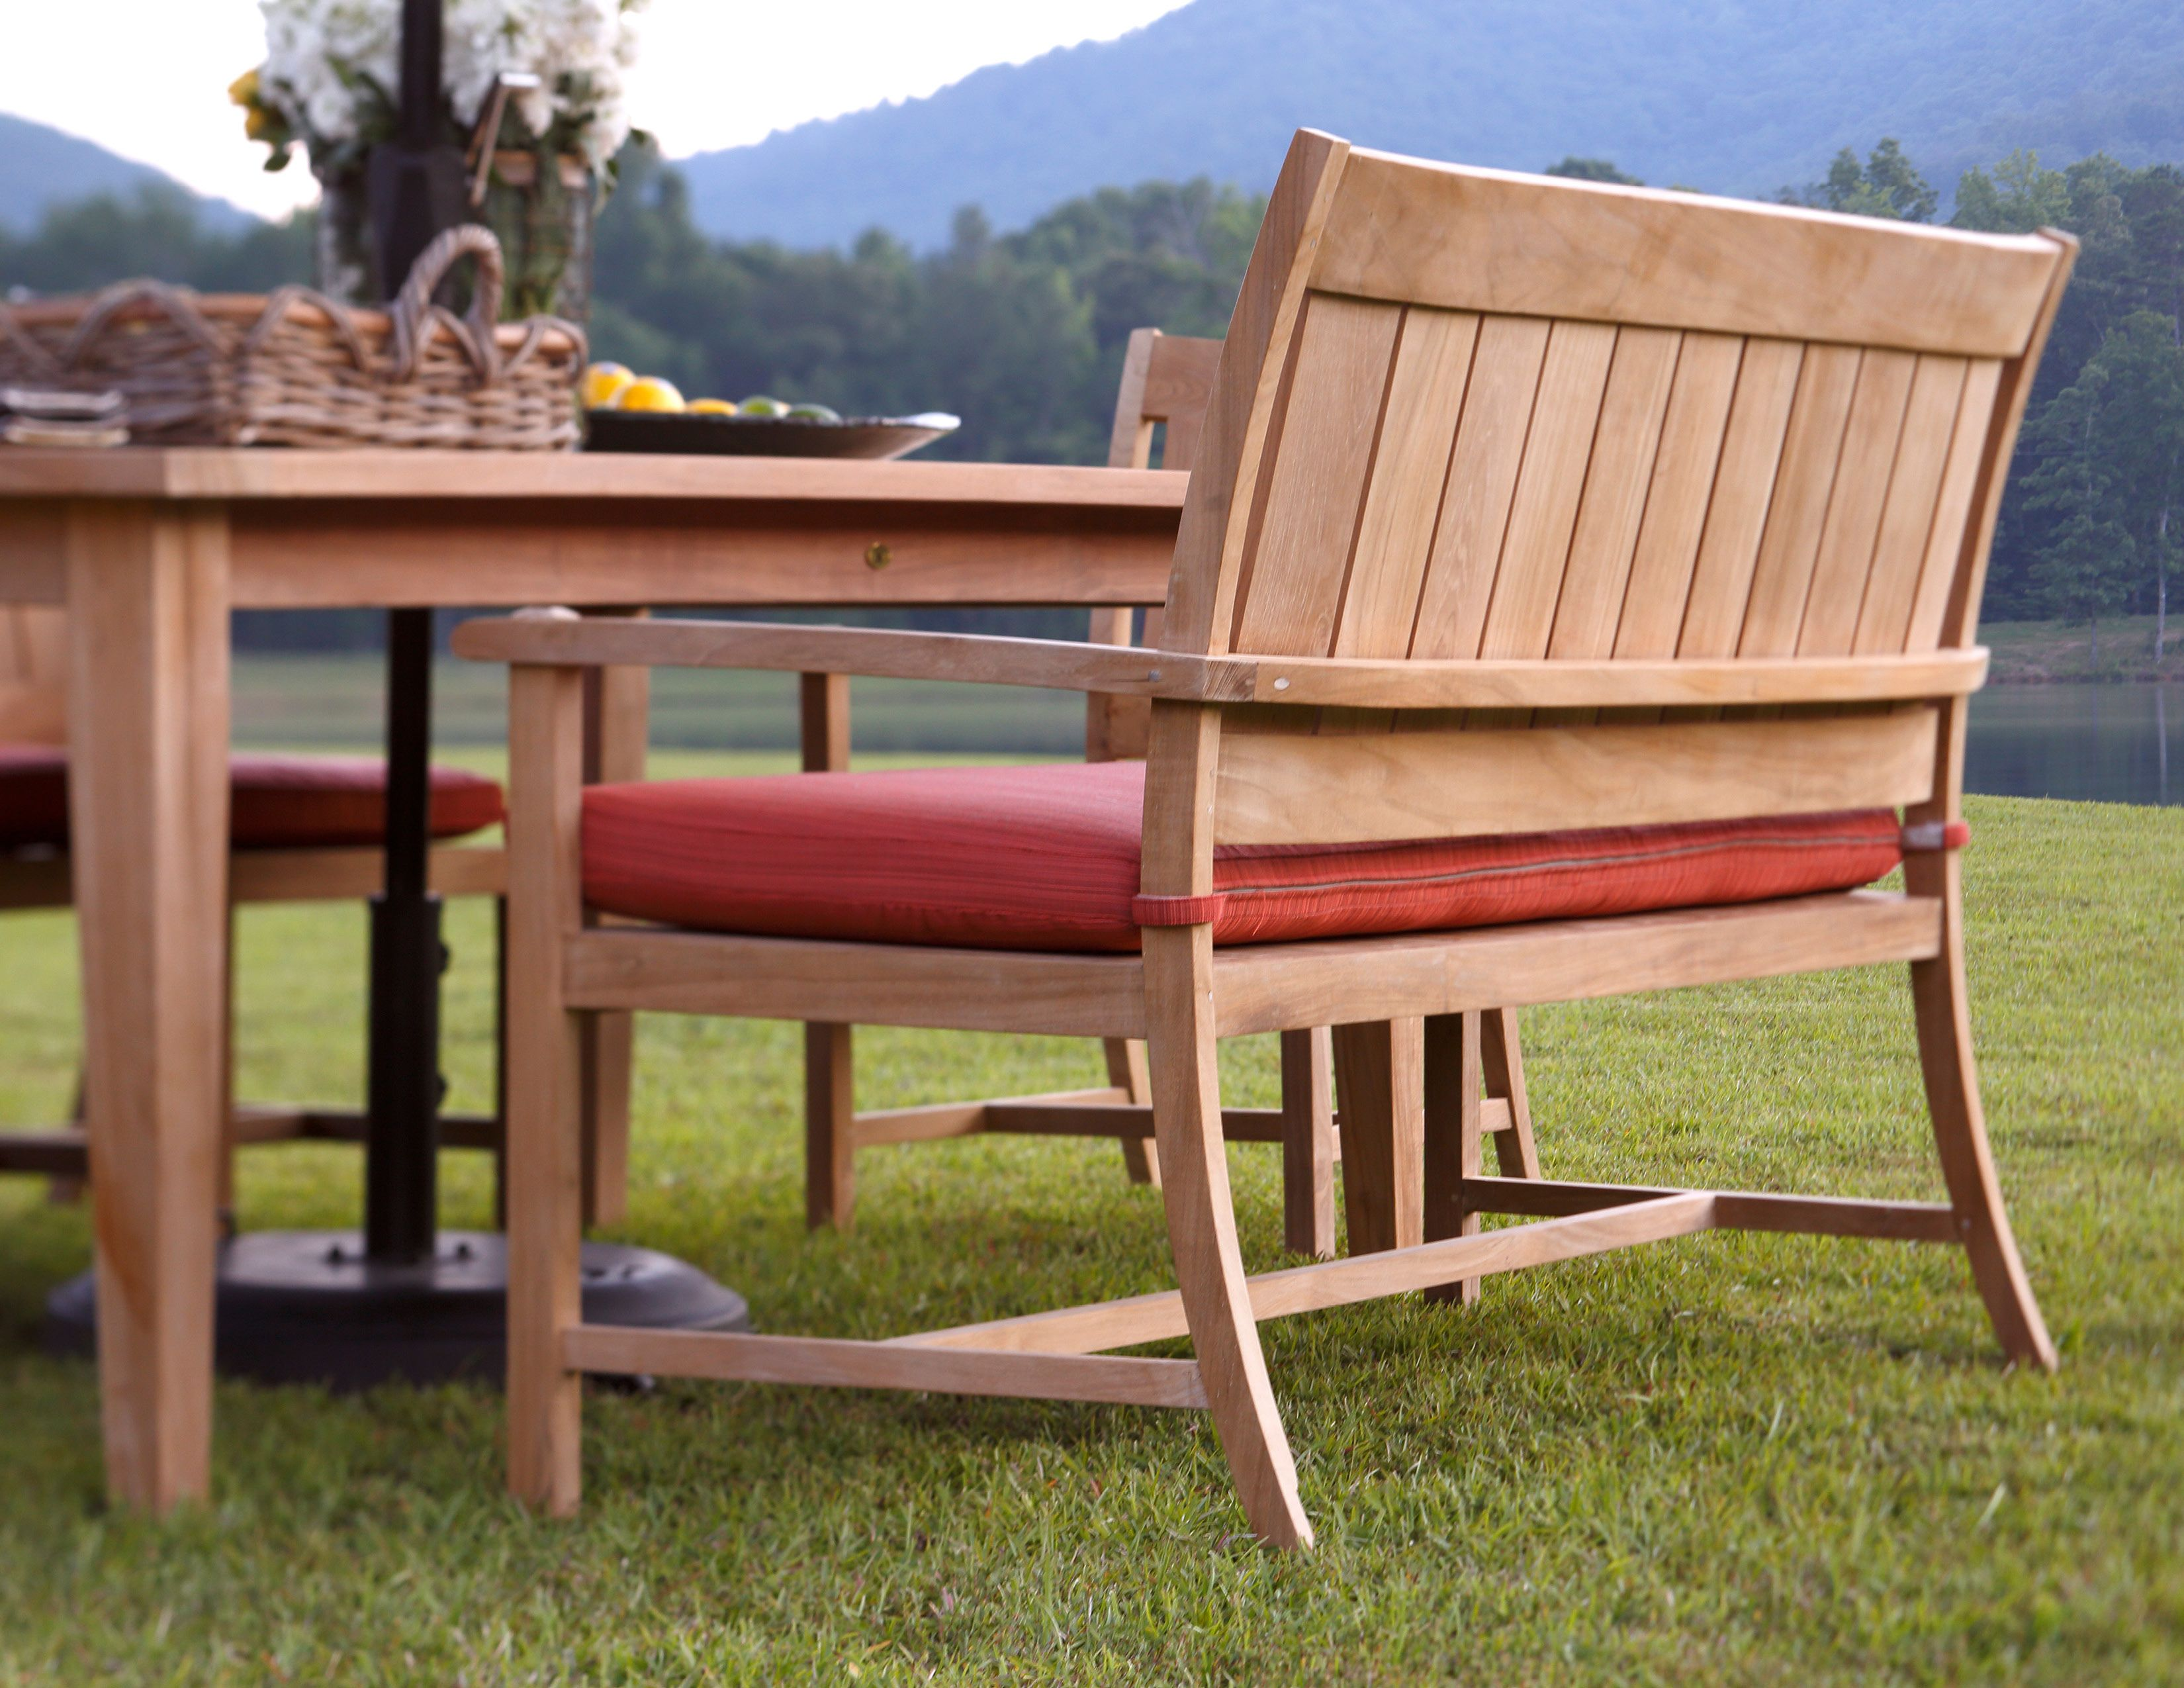 Best Images About Luxury Outdoor Furniture On Pinterest - Summer classics outdoor furniture